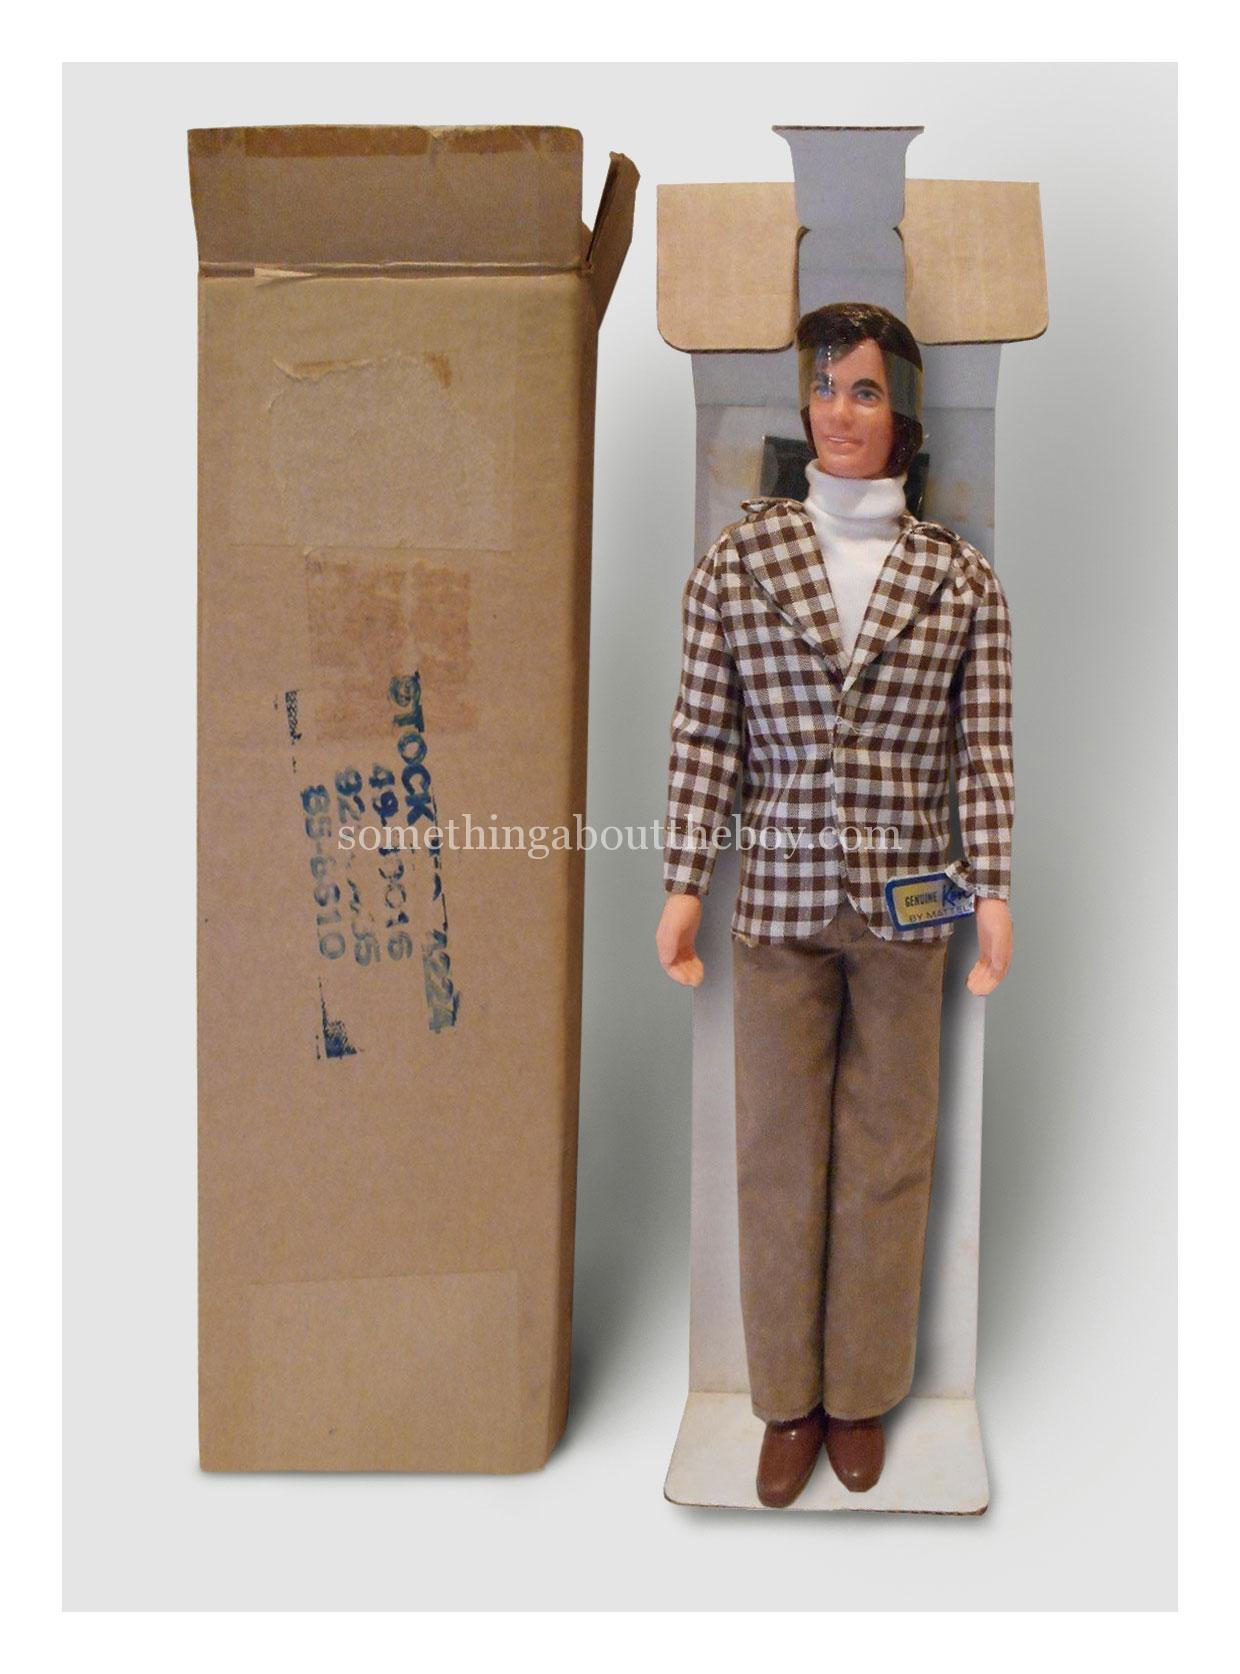 1973 #4224 Mod Hair Ken Mail Order version